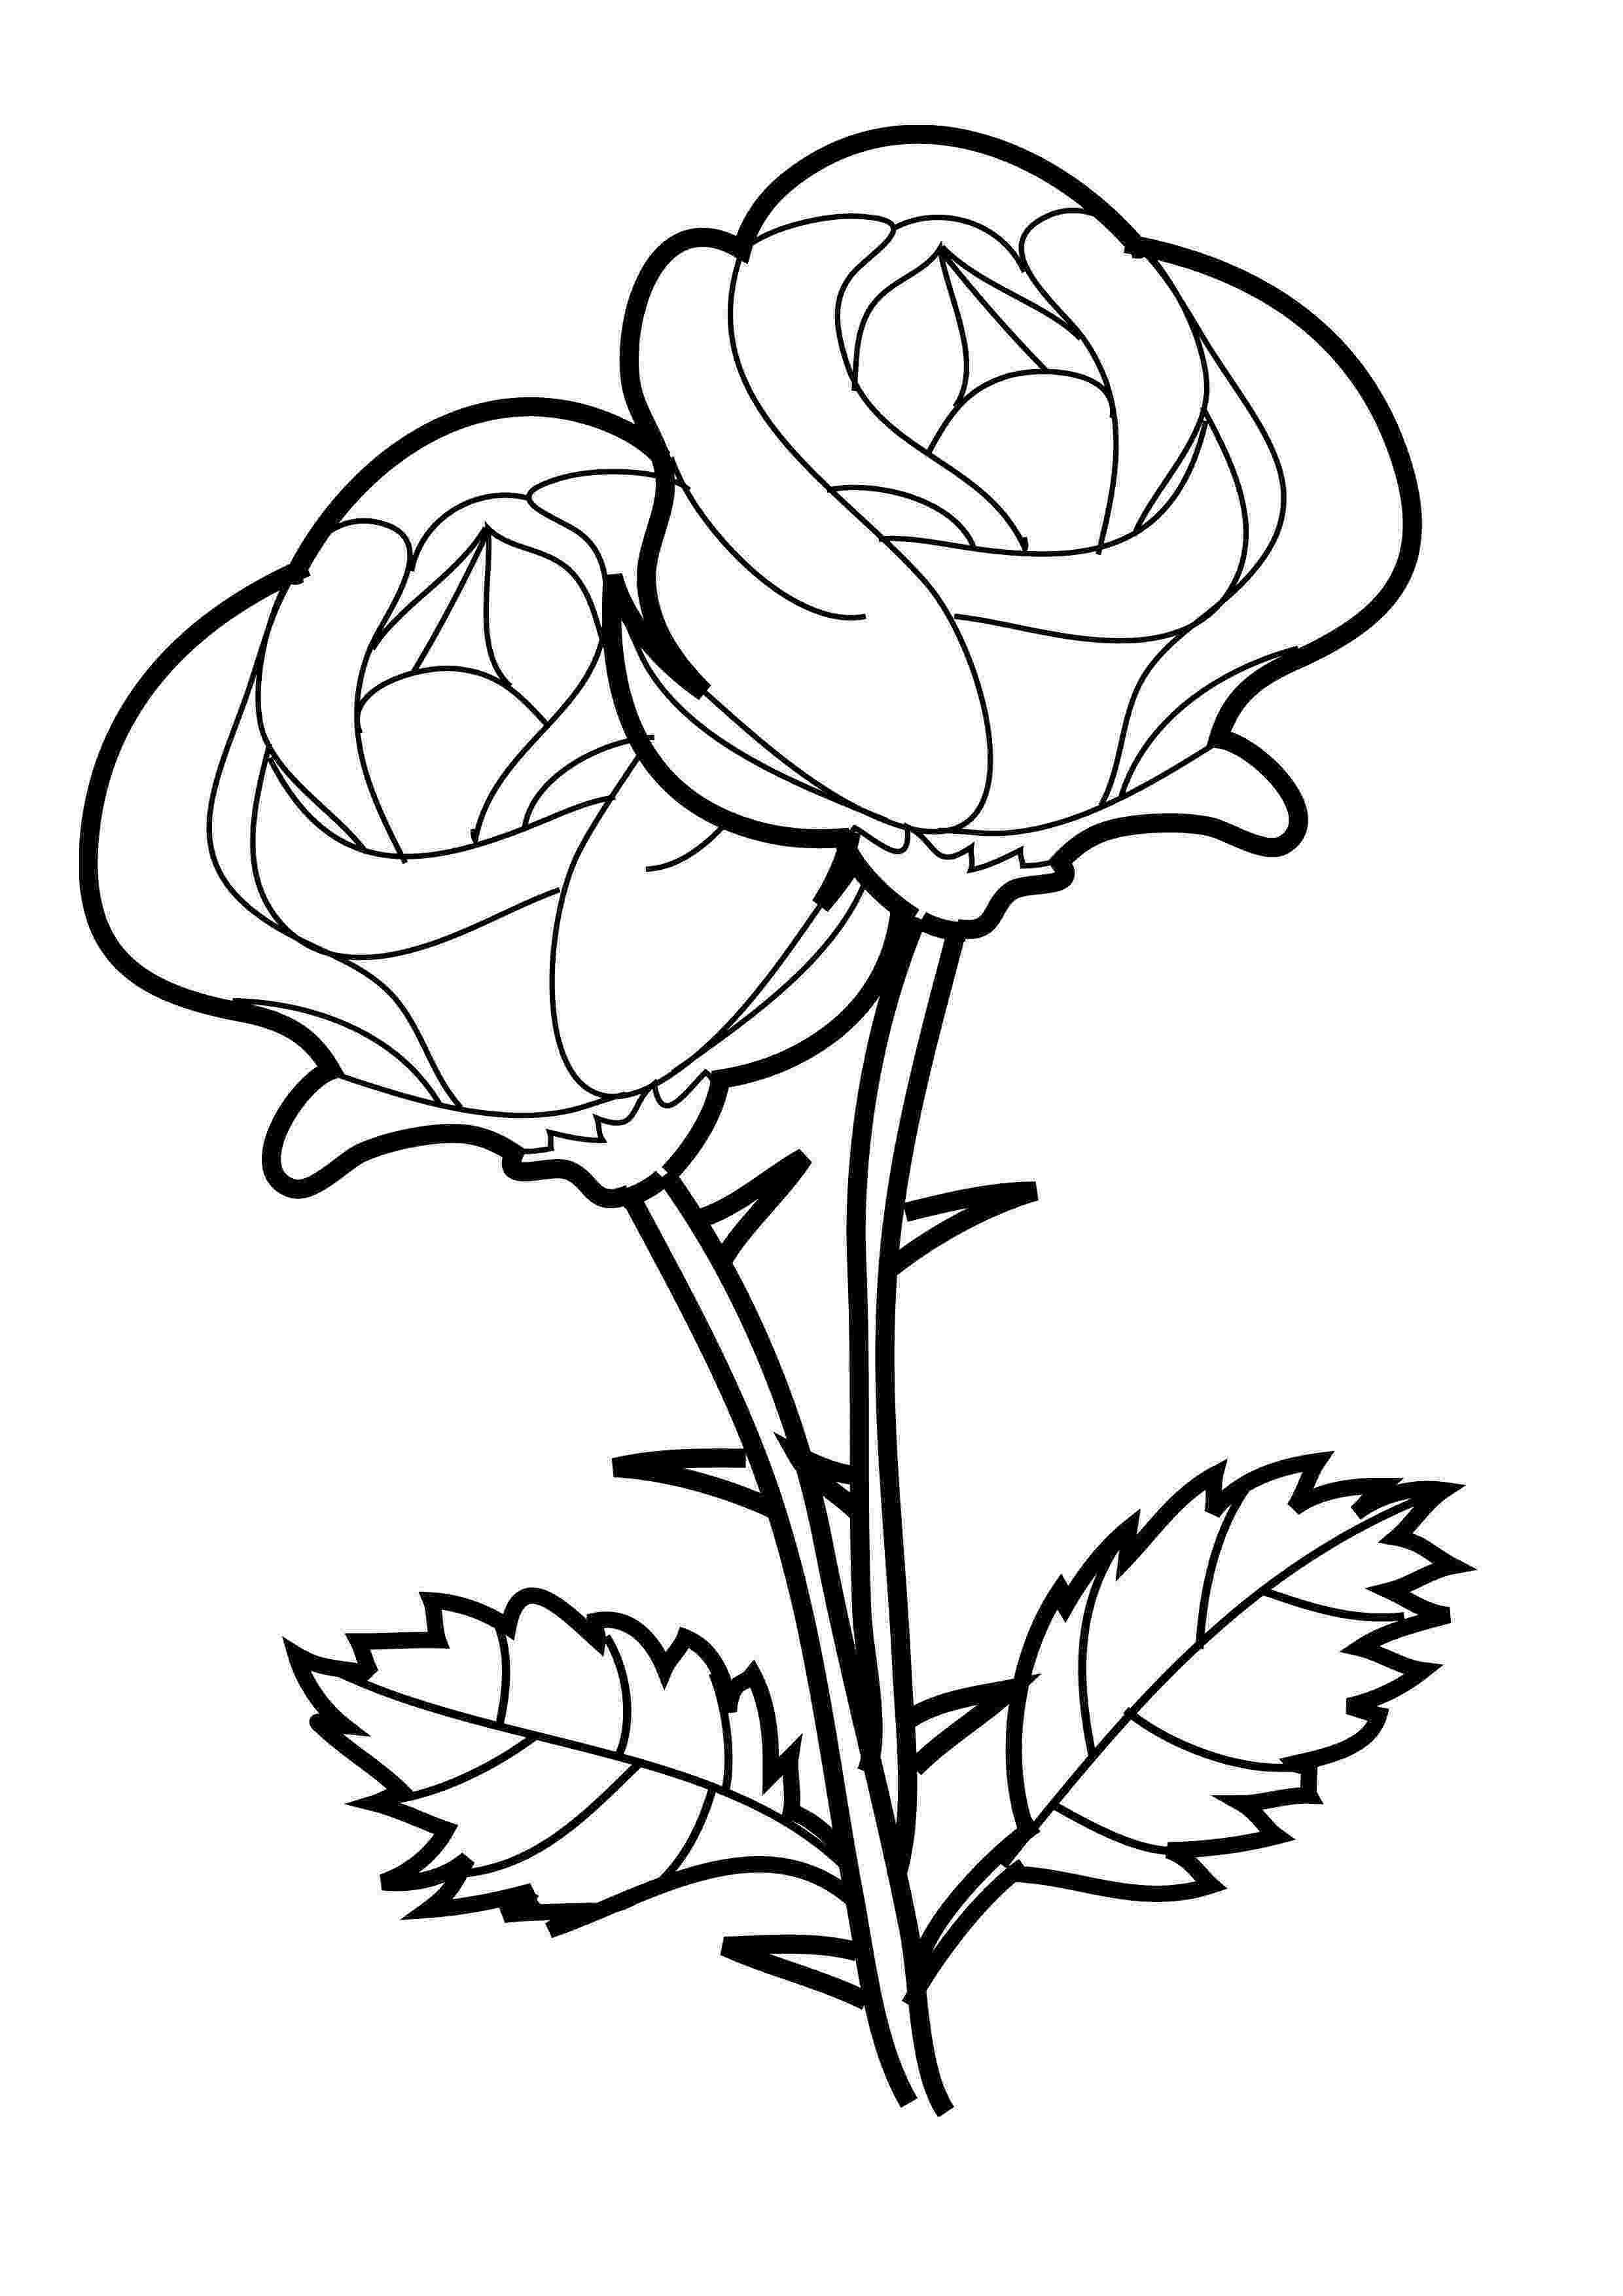 flowers color pages free printable flower coloring pages for kids best flowers color pages 1 4